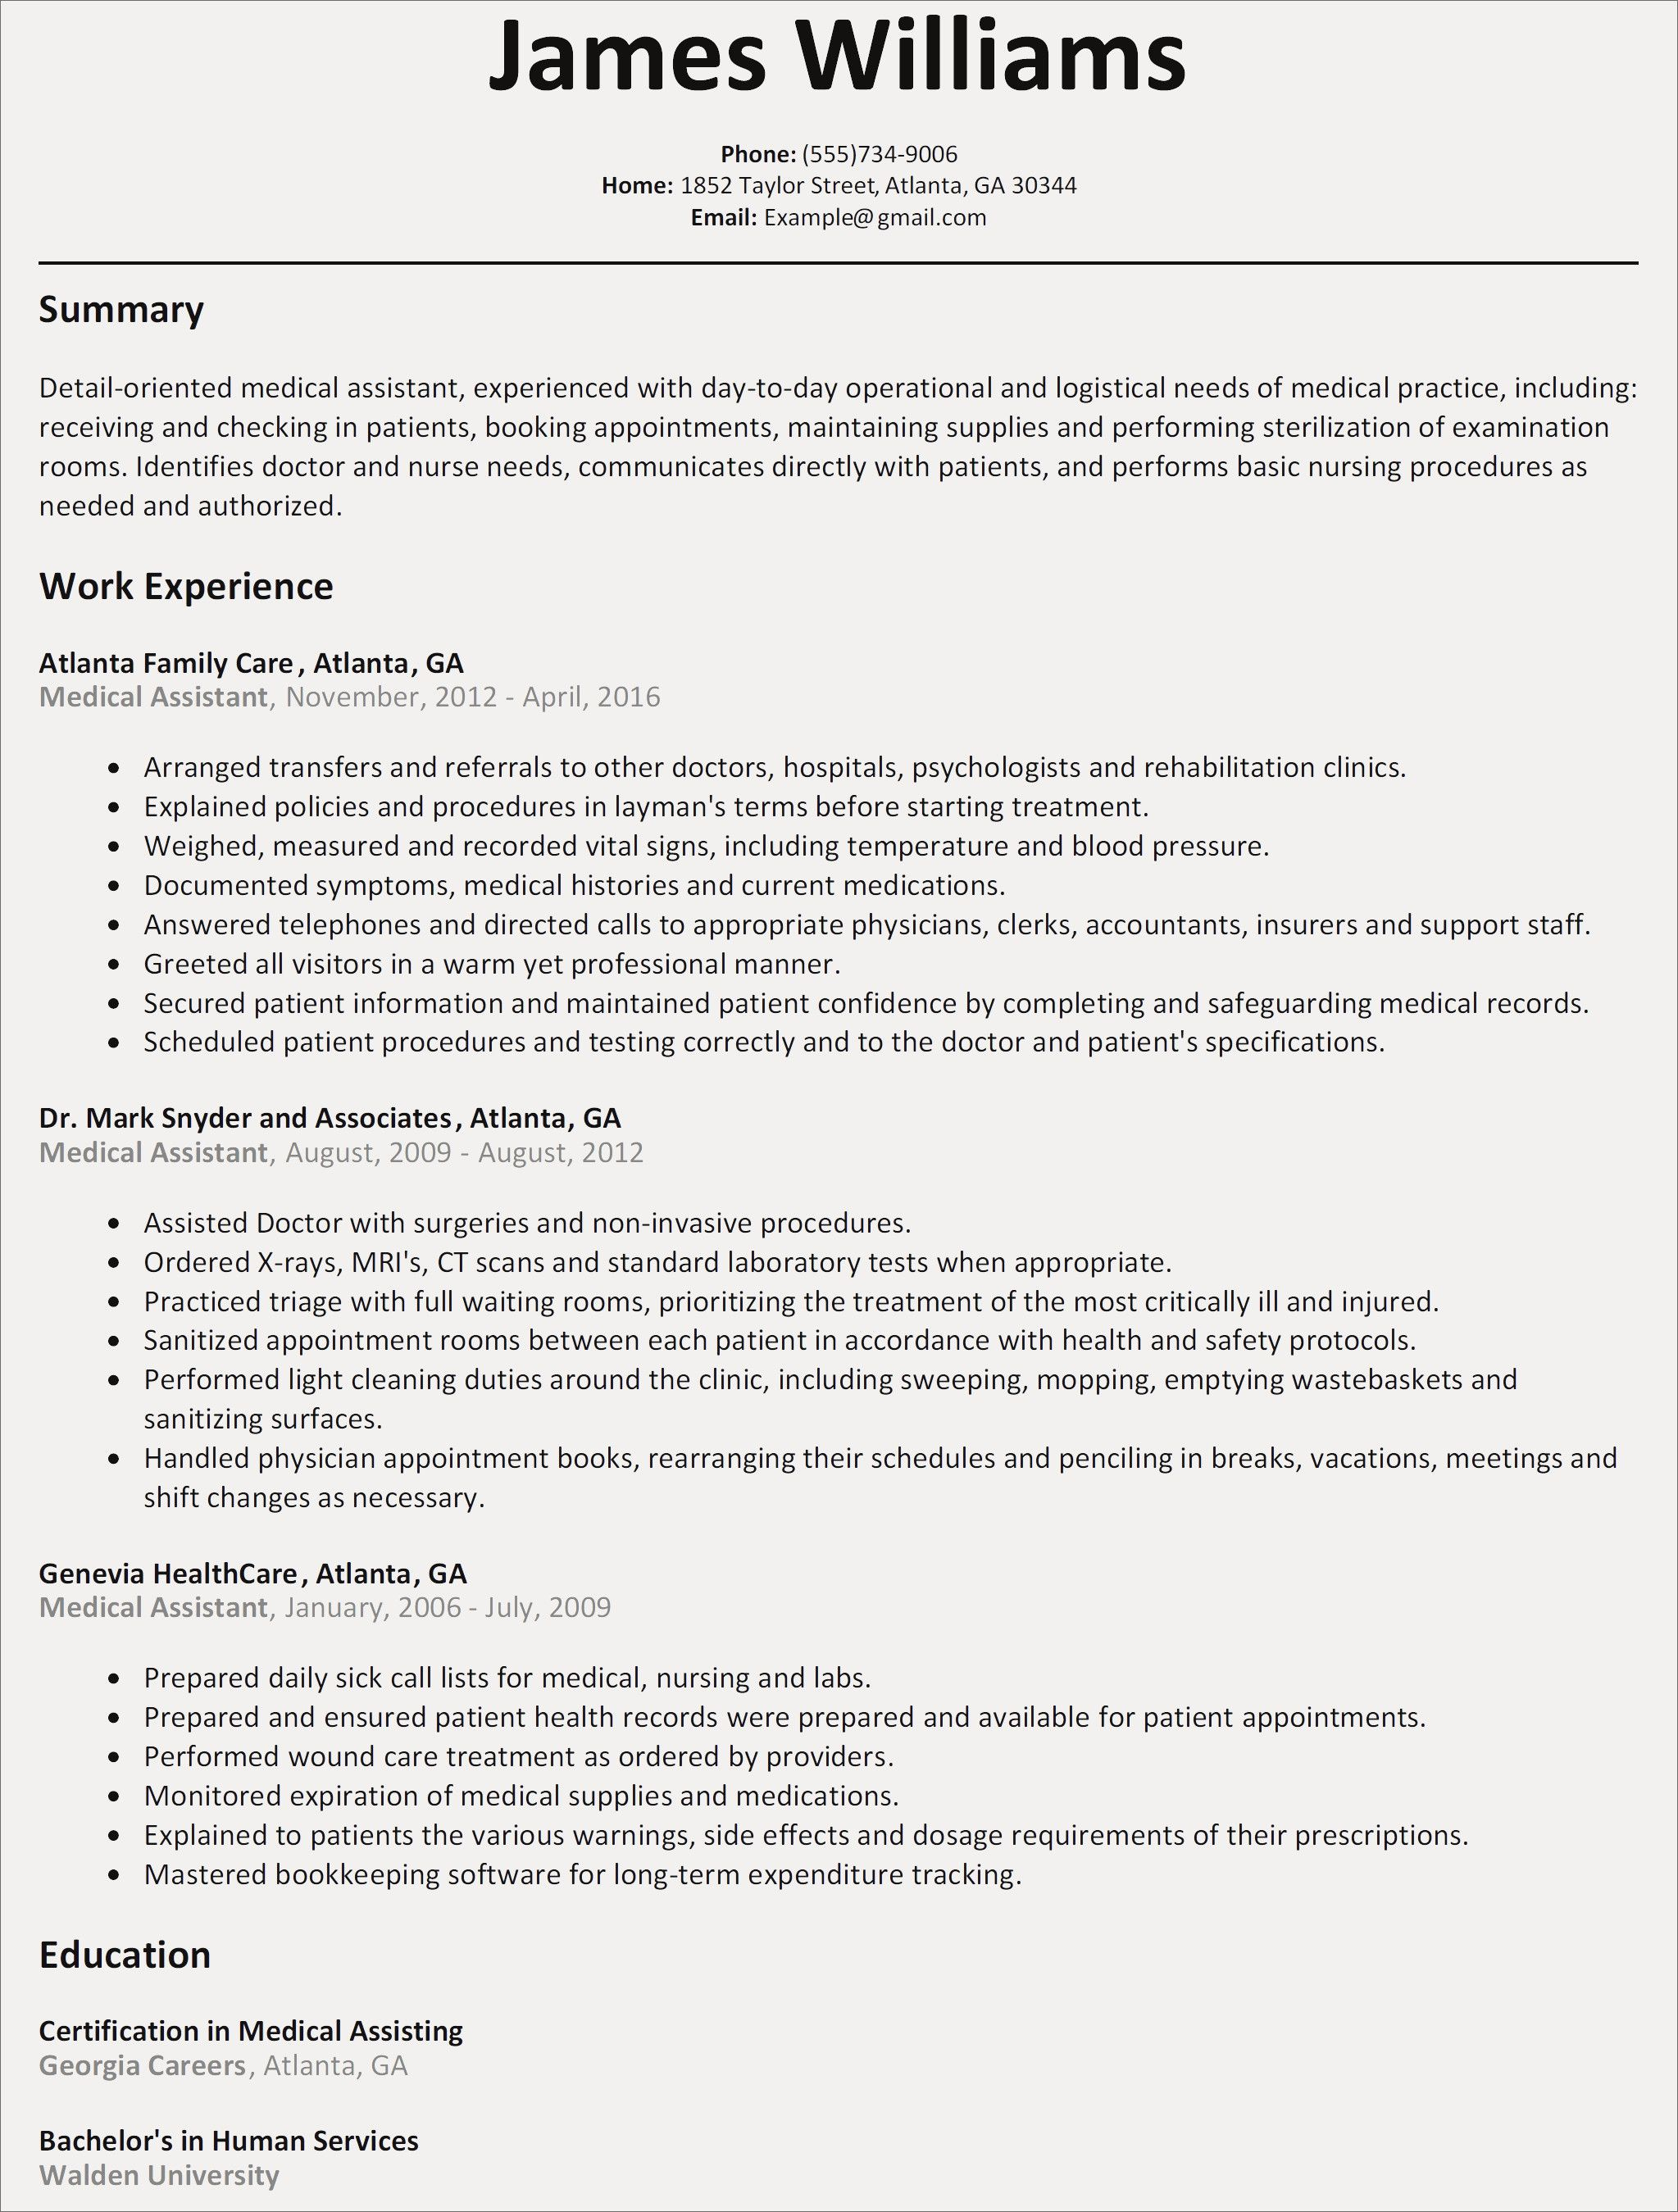 72 Awesome Photography Of Resume Skills And Abilities Examples Sales